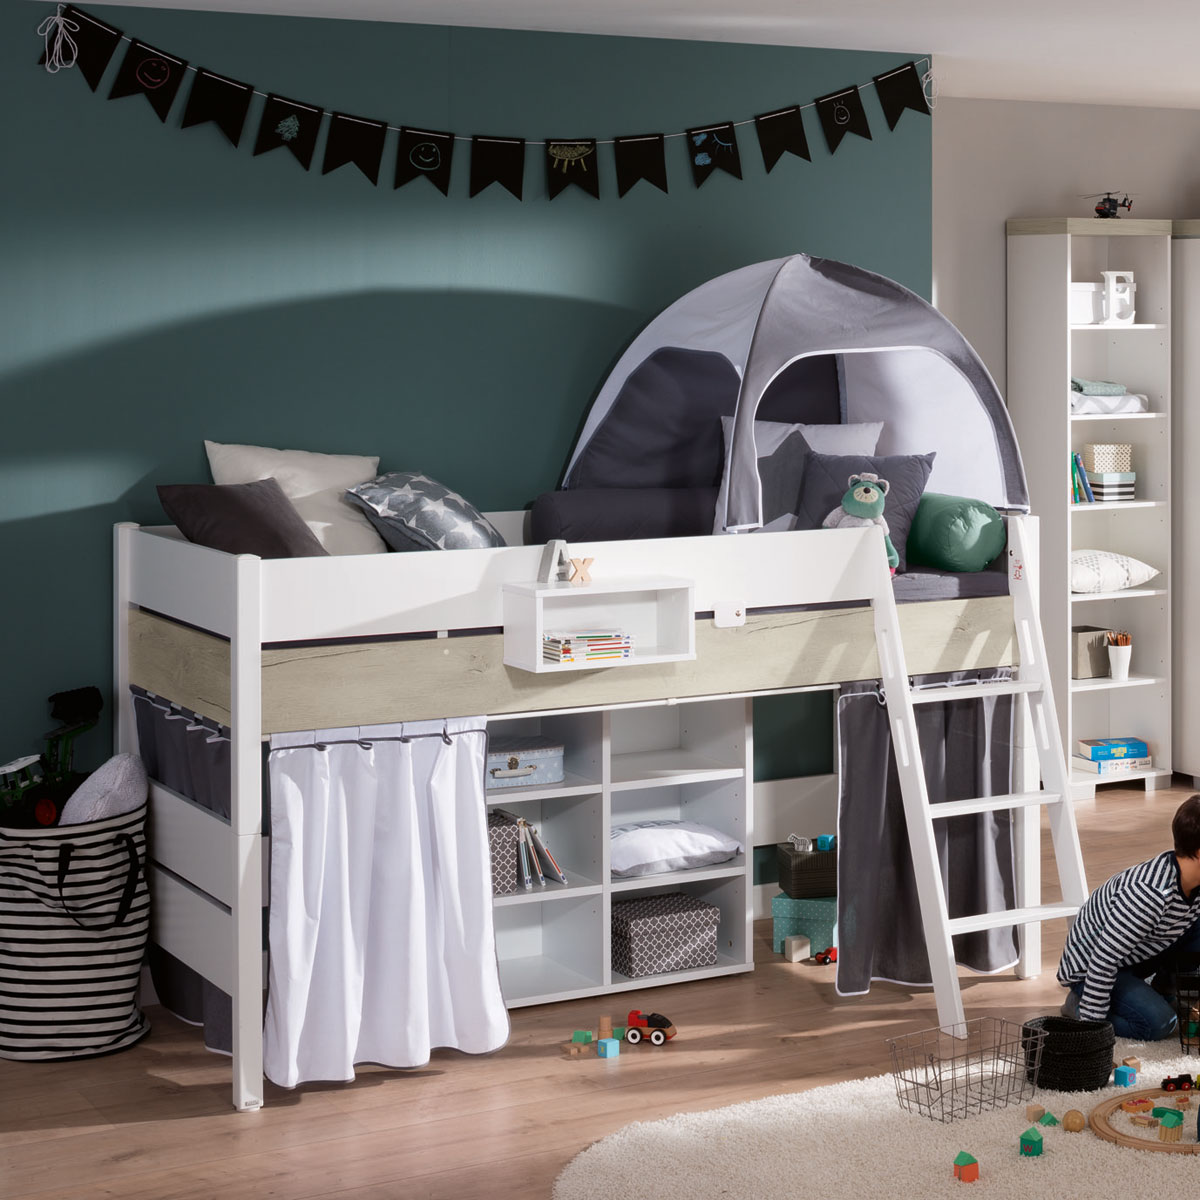 paidi iglu zelt individuell konfigurieren babyonlineshop. Black Bedroom Furniture Sets. Home Design Ideas